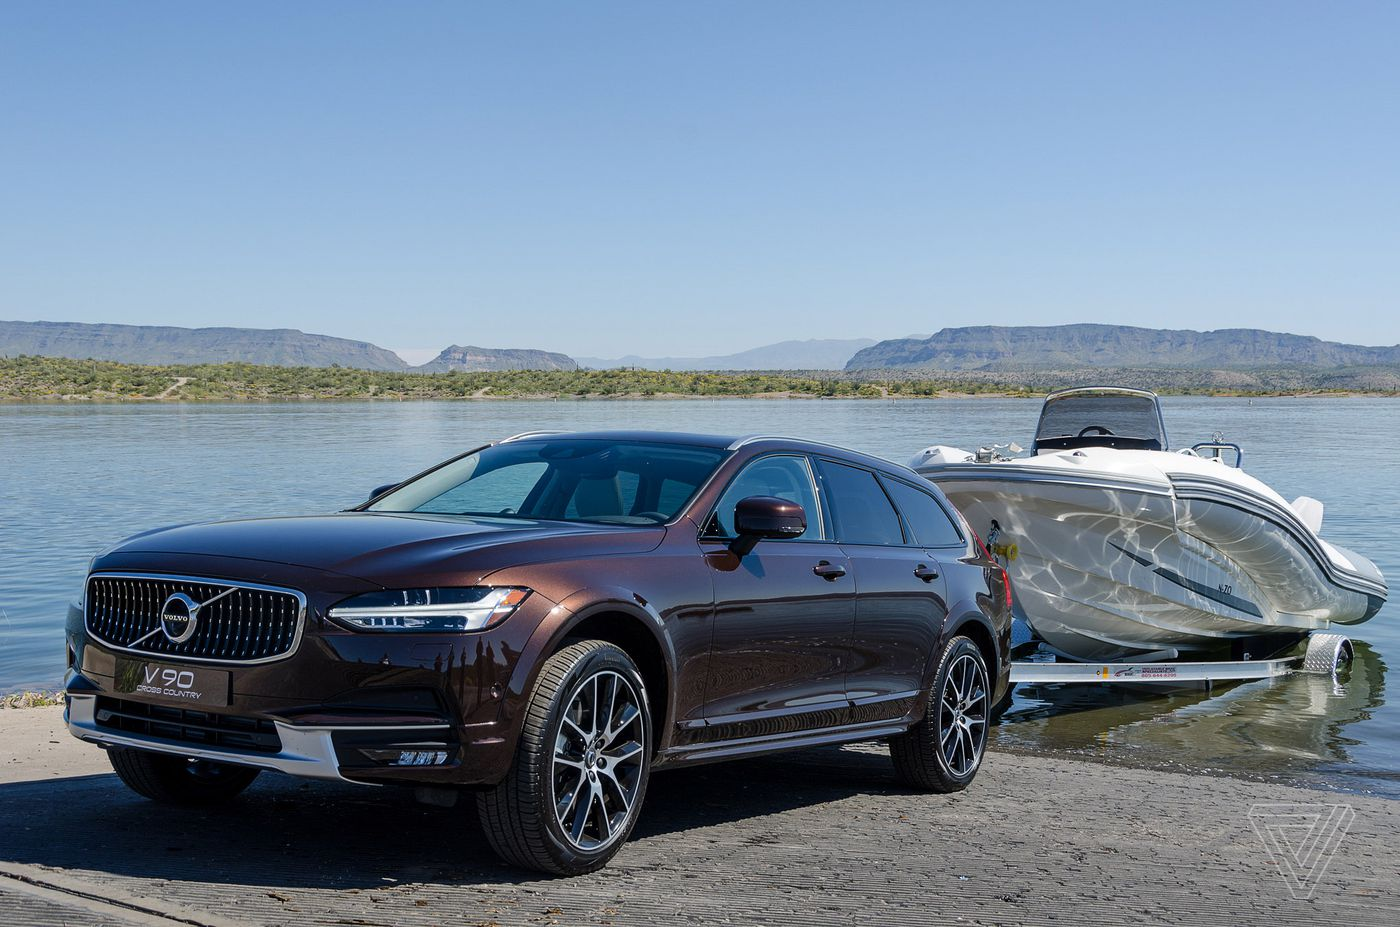 The wagon is back: I'm spending a month with the Volvo V90